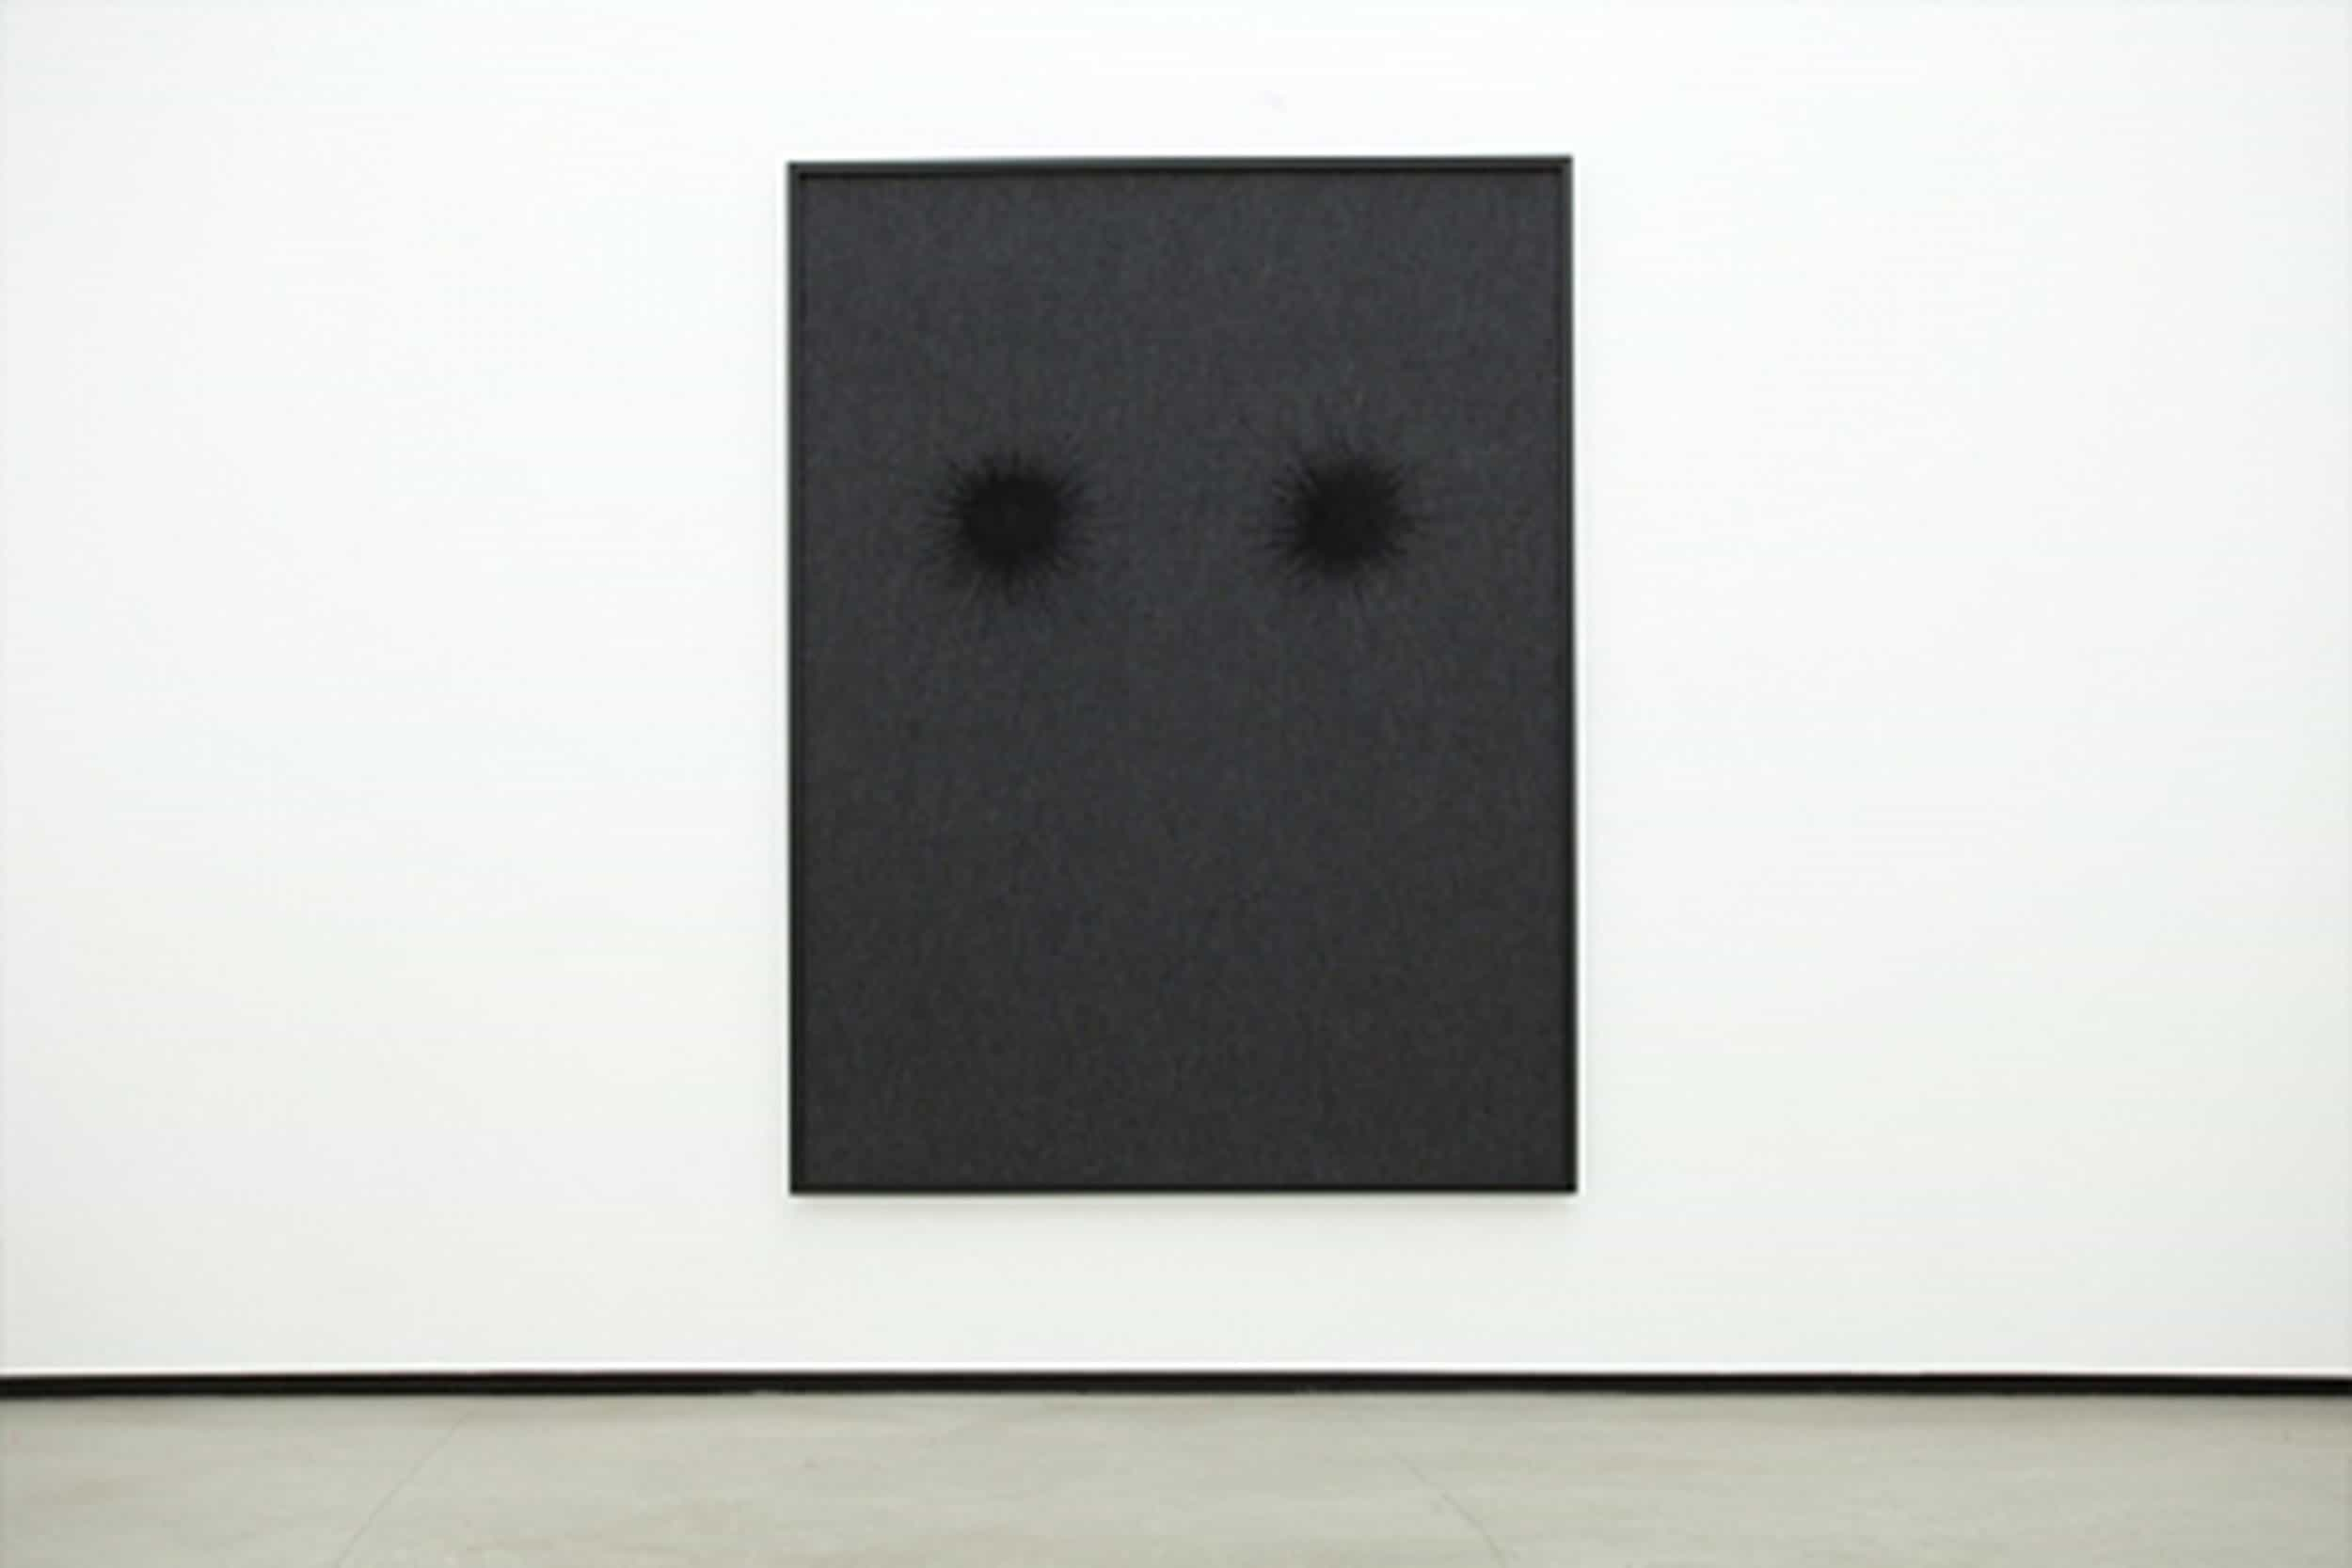 These Eyes, They Follow Me, 2011, carpet, acrylic paint, framed, 200x150cm